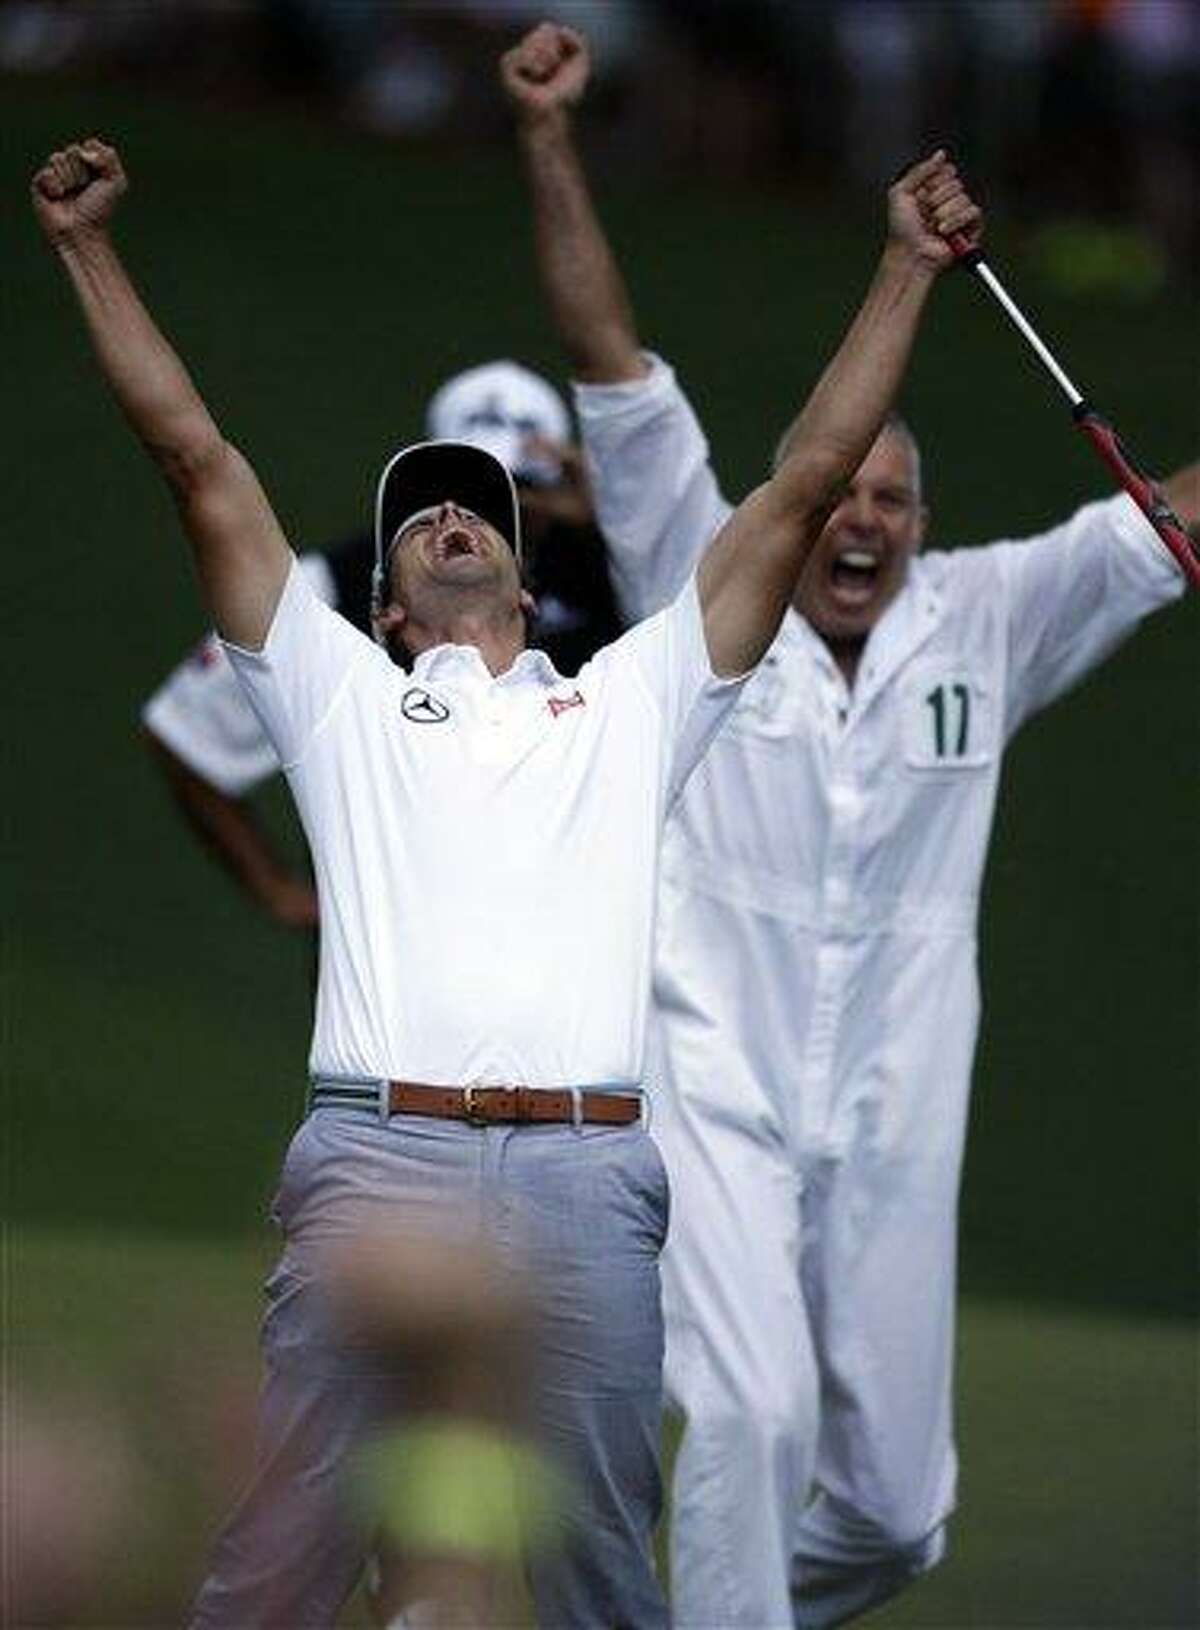 AP Photo/Darron Cummings Adam Scott, of Australia, celebrates with caddie Steve Williams after making a birdie putt on the second playoff hole to win the Masters golf tournament Sunday, April 14, 2013, in Augusta, Ga.